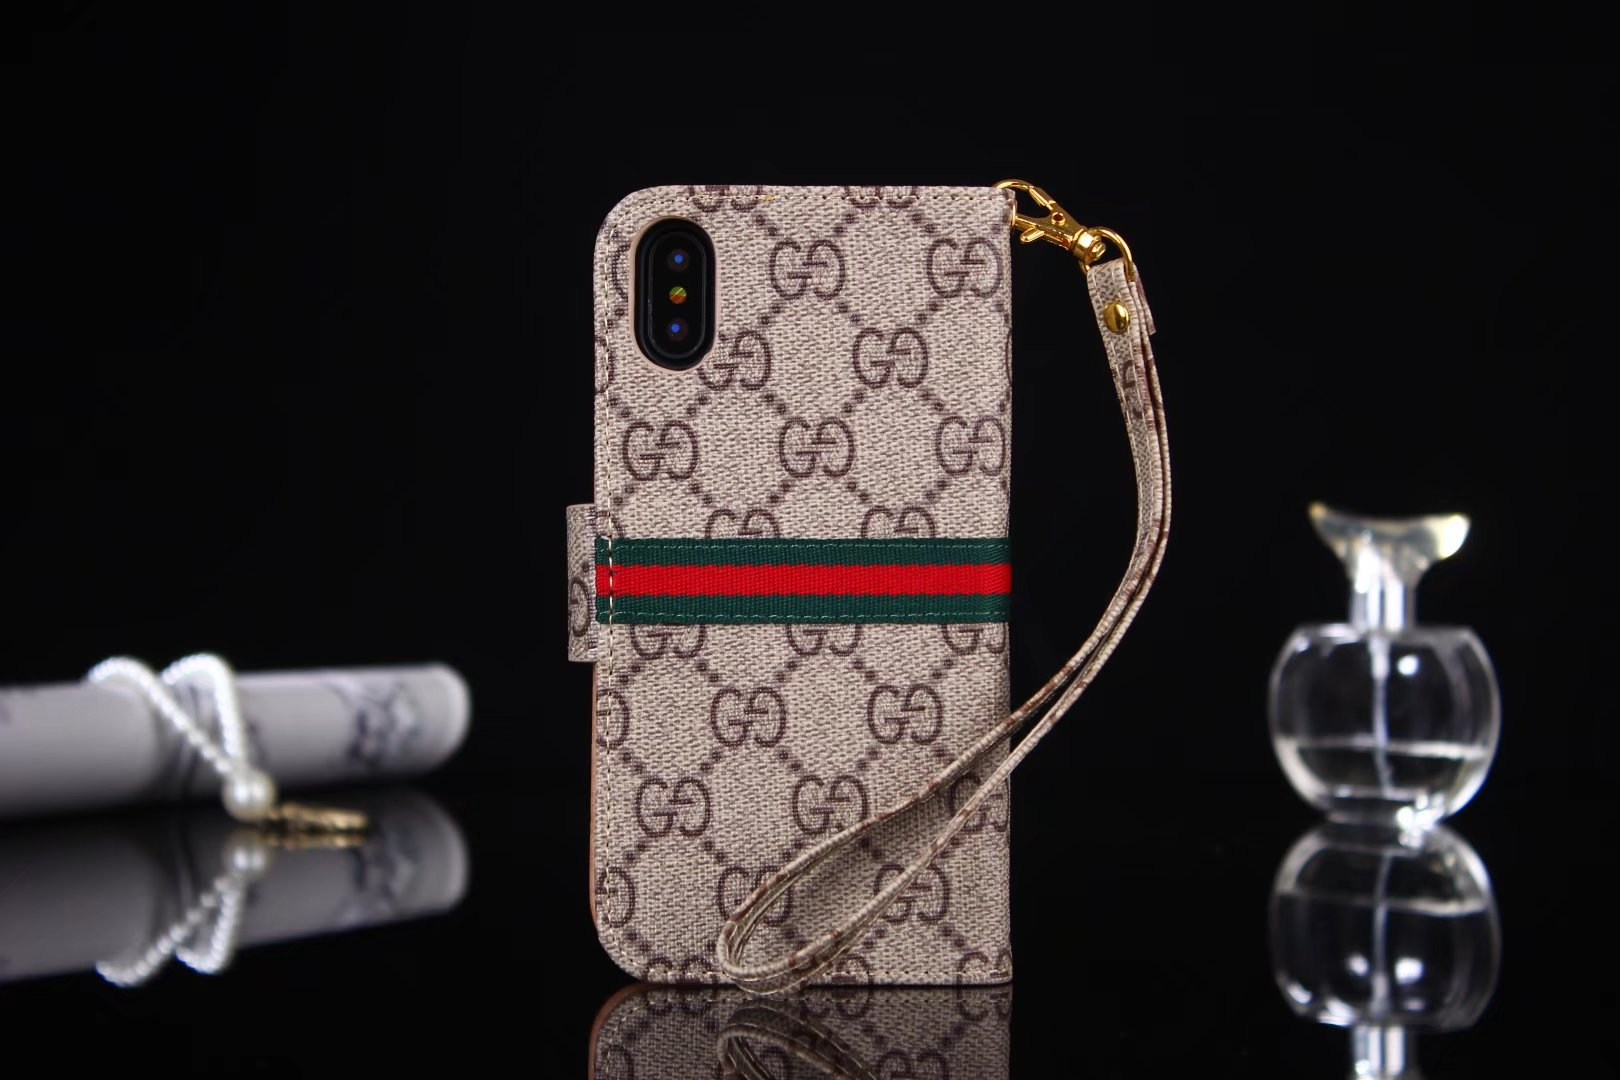 case iphone X covers for iphone X Gucci iPhone X case cheap cell phone cases best cases iphone designer iphone 6 s cases leather cell phone cases cool covers for iphone 6 iphone case sale